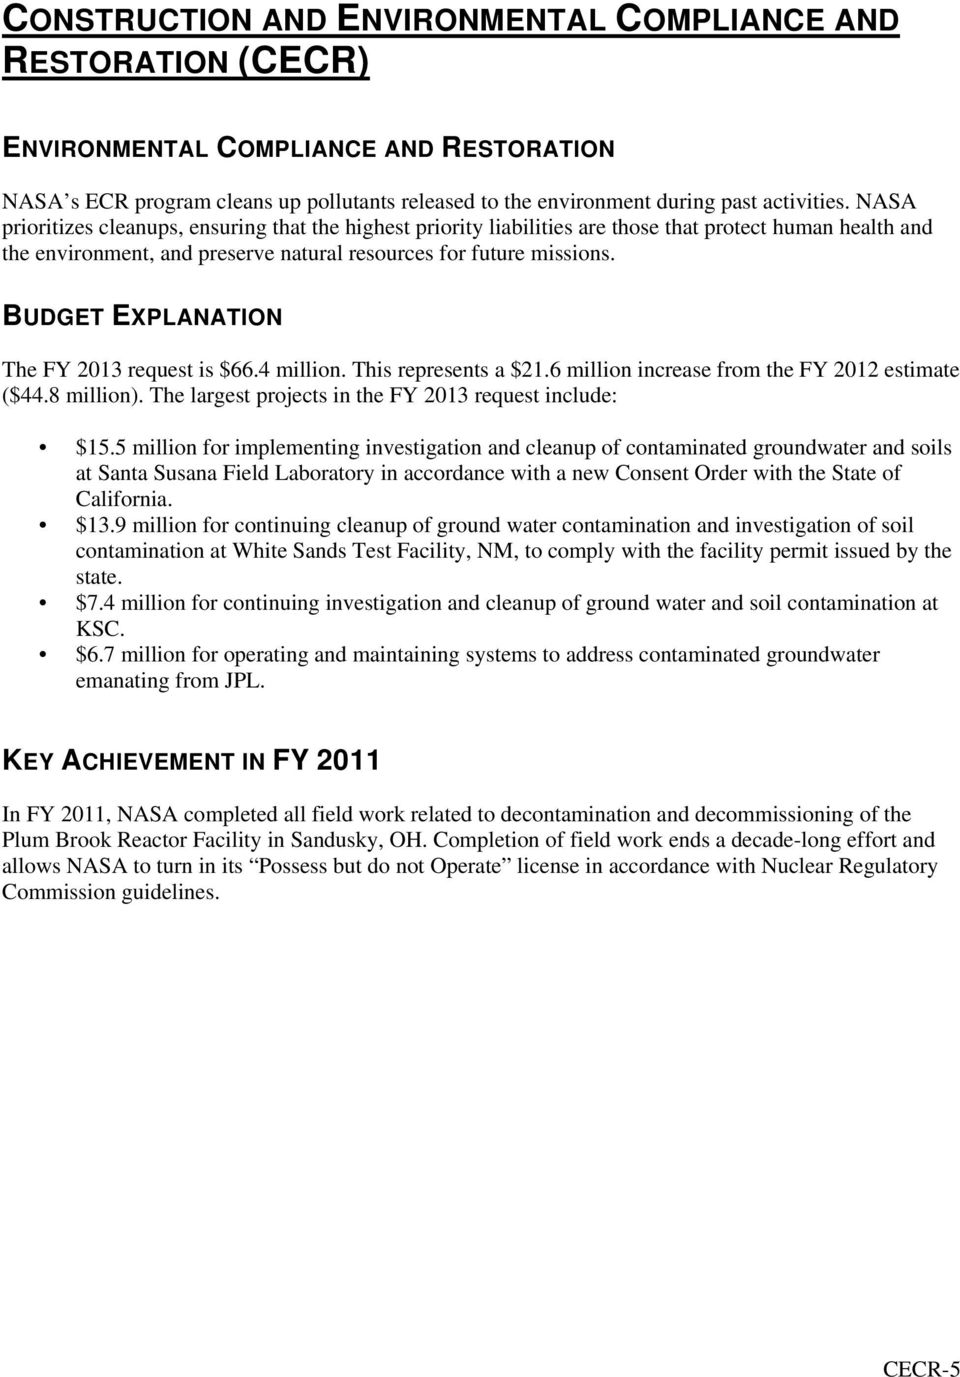 BUDGET EXPLANATION The FY 2013 request is $66.4 million. This represents a $21.6 million increase from the FY 2012 estimate ($44.8 million). The largest projects in the FY 2013 request include: $15.